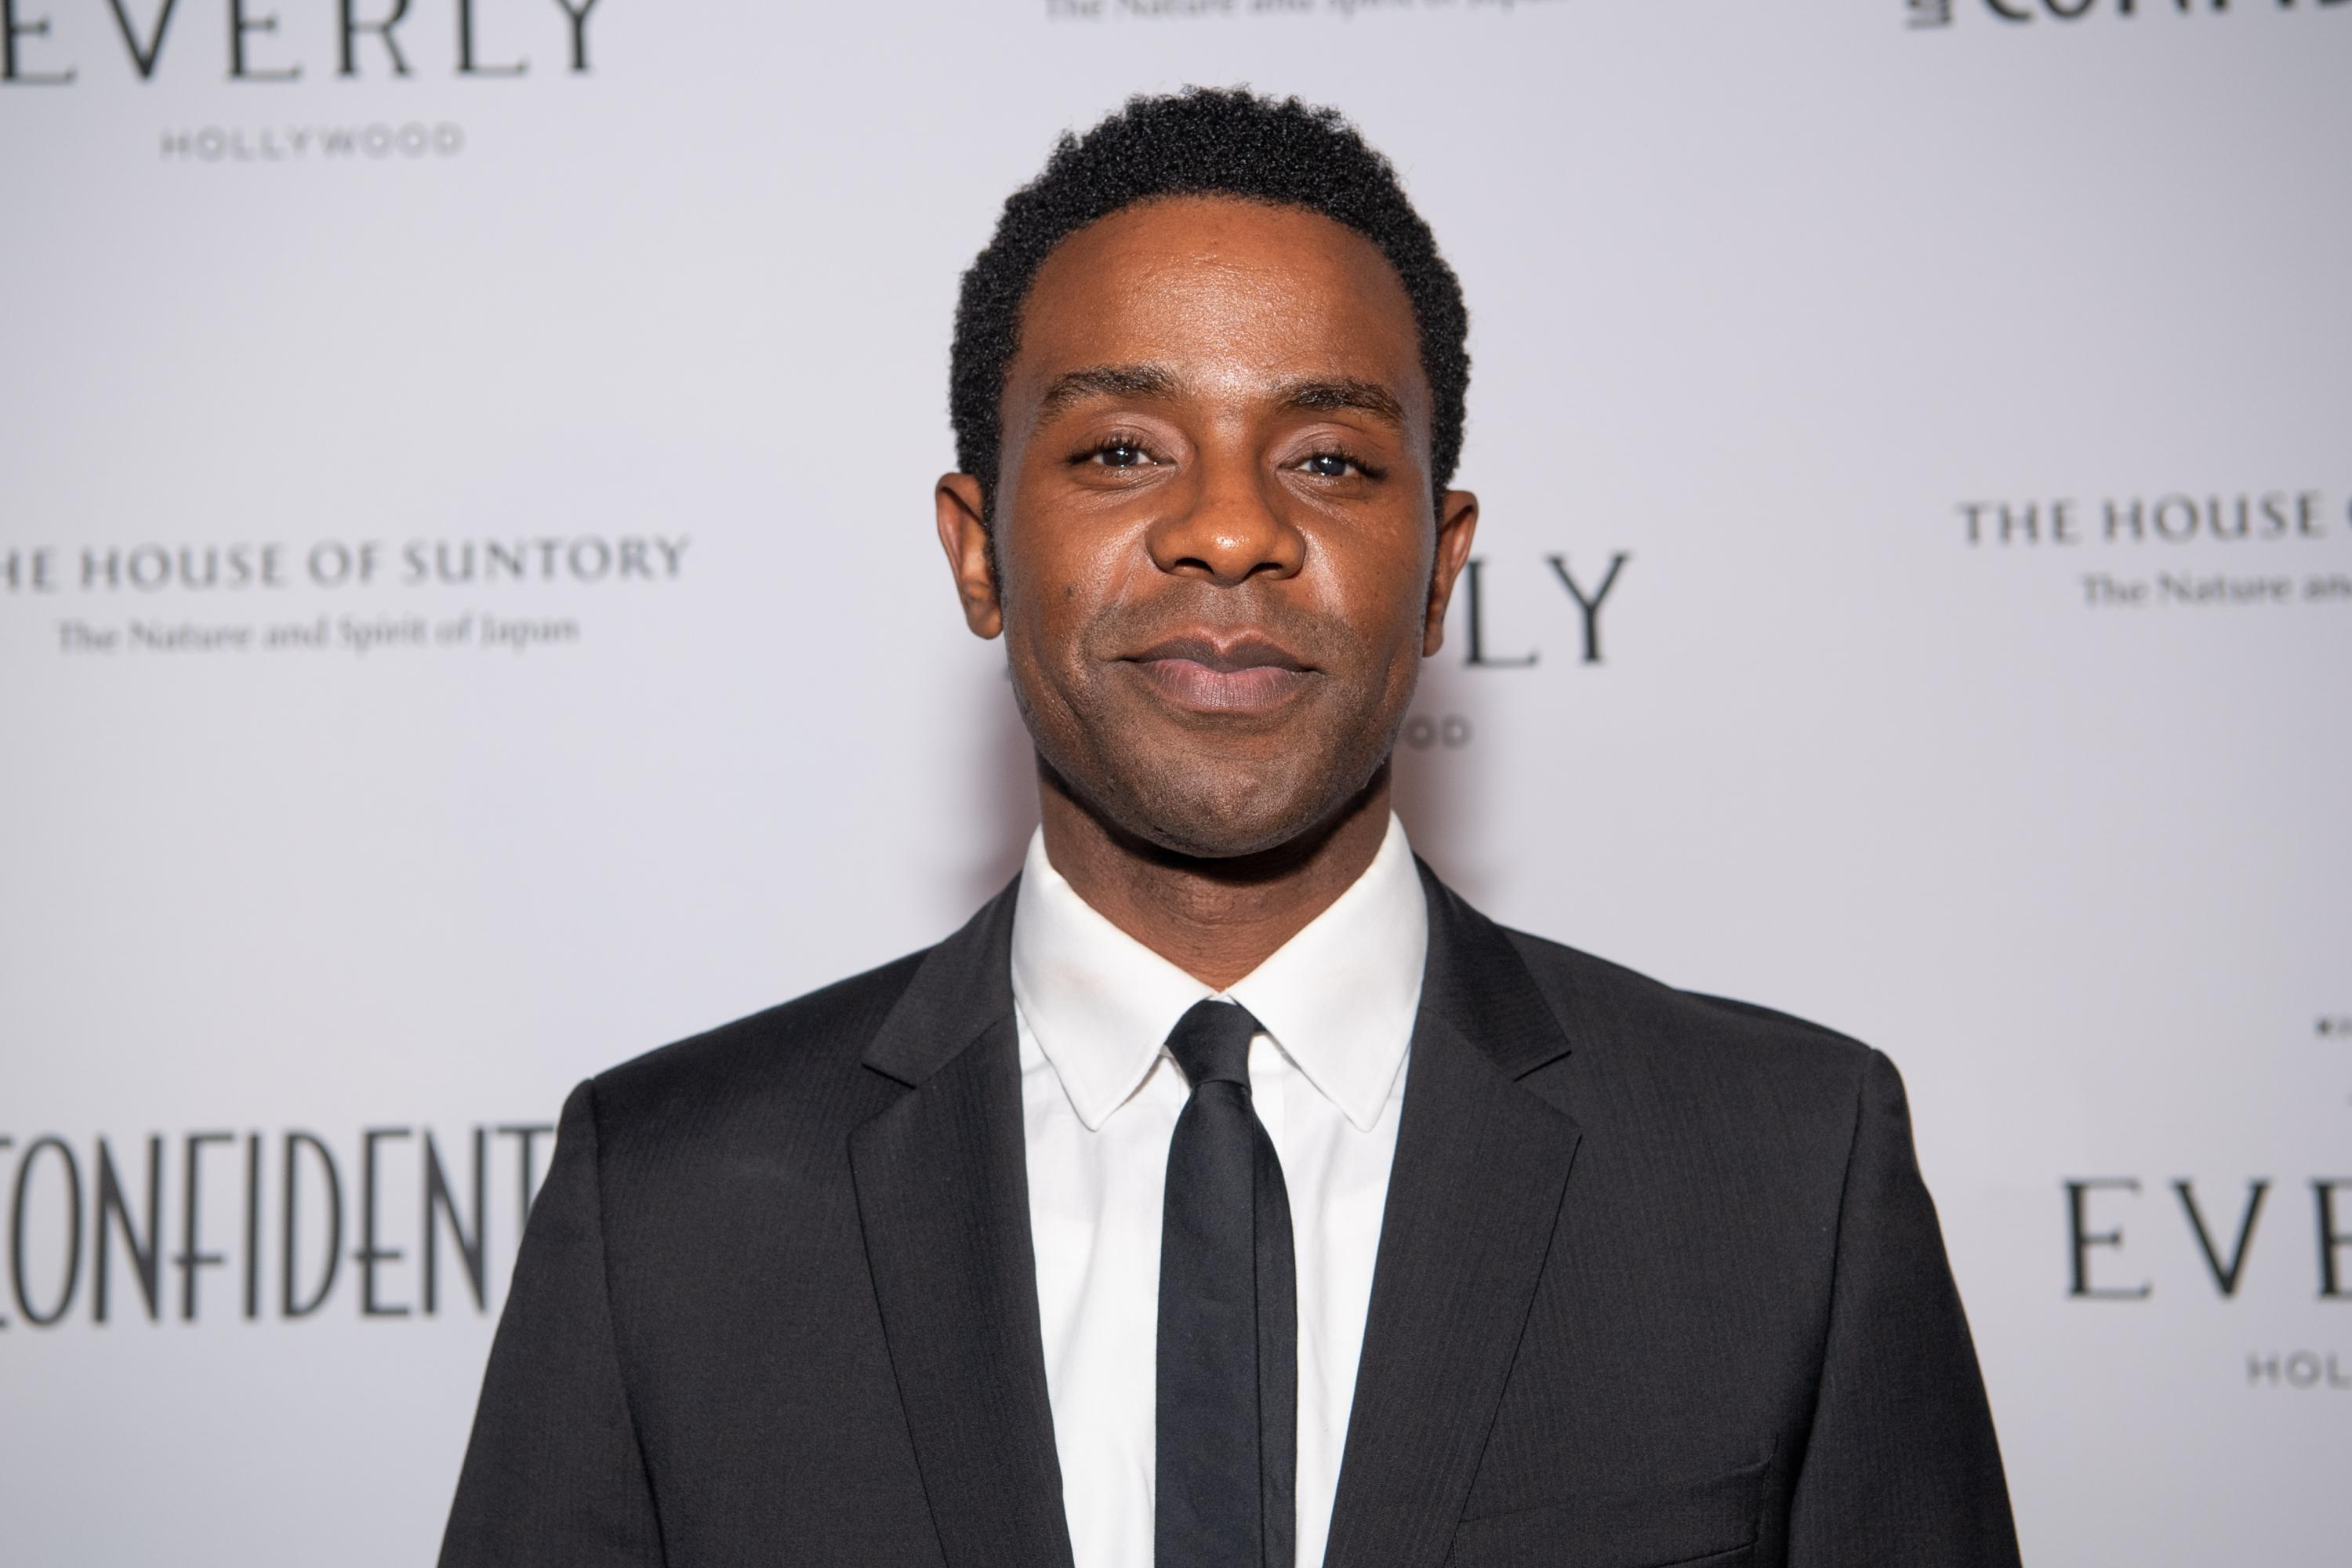 Who Plays Mr. Lawrence on 'This Is Us'? — Facts About the Character